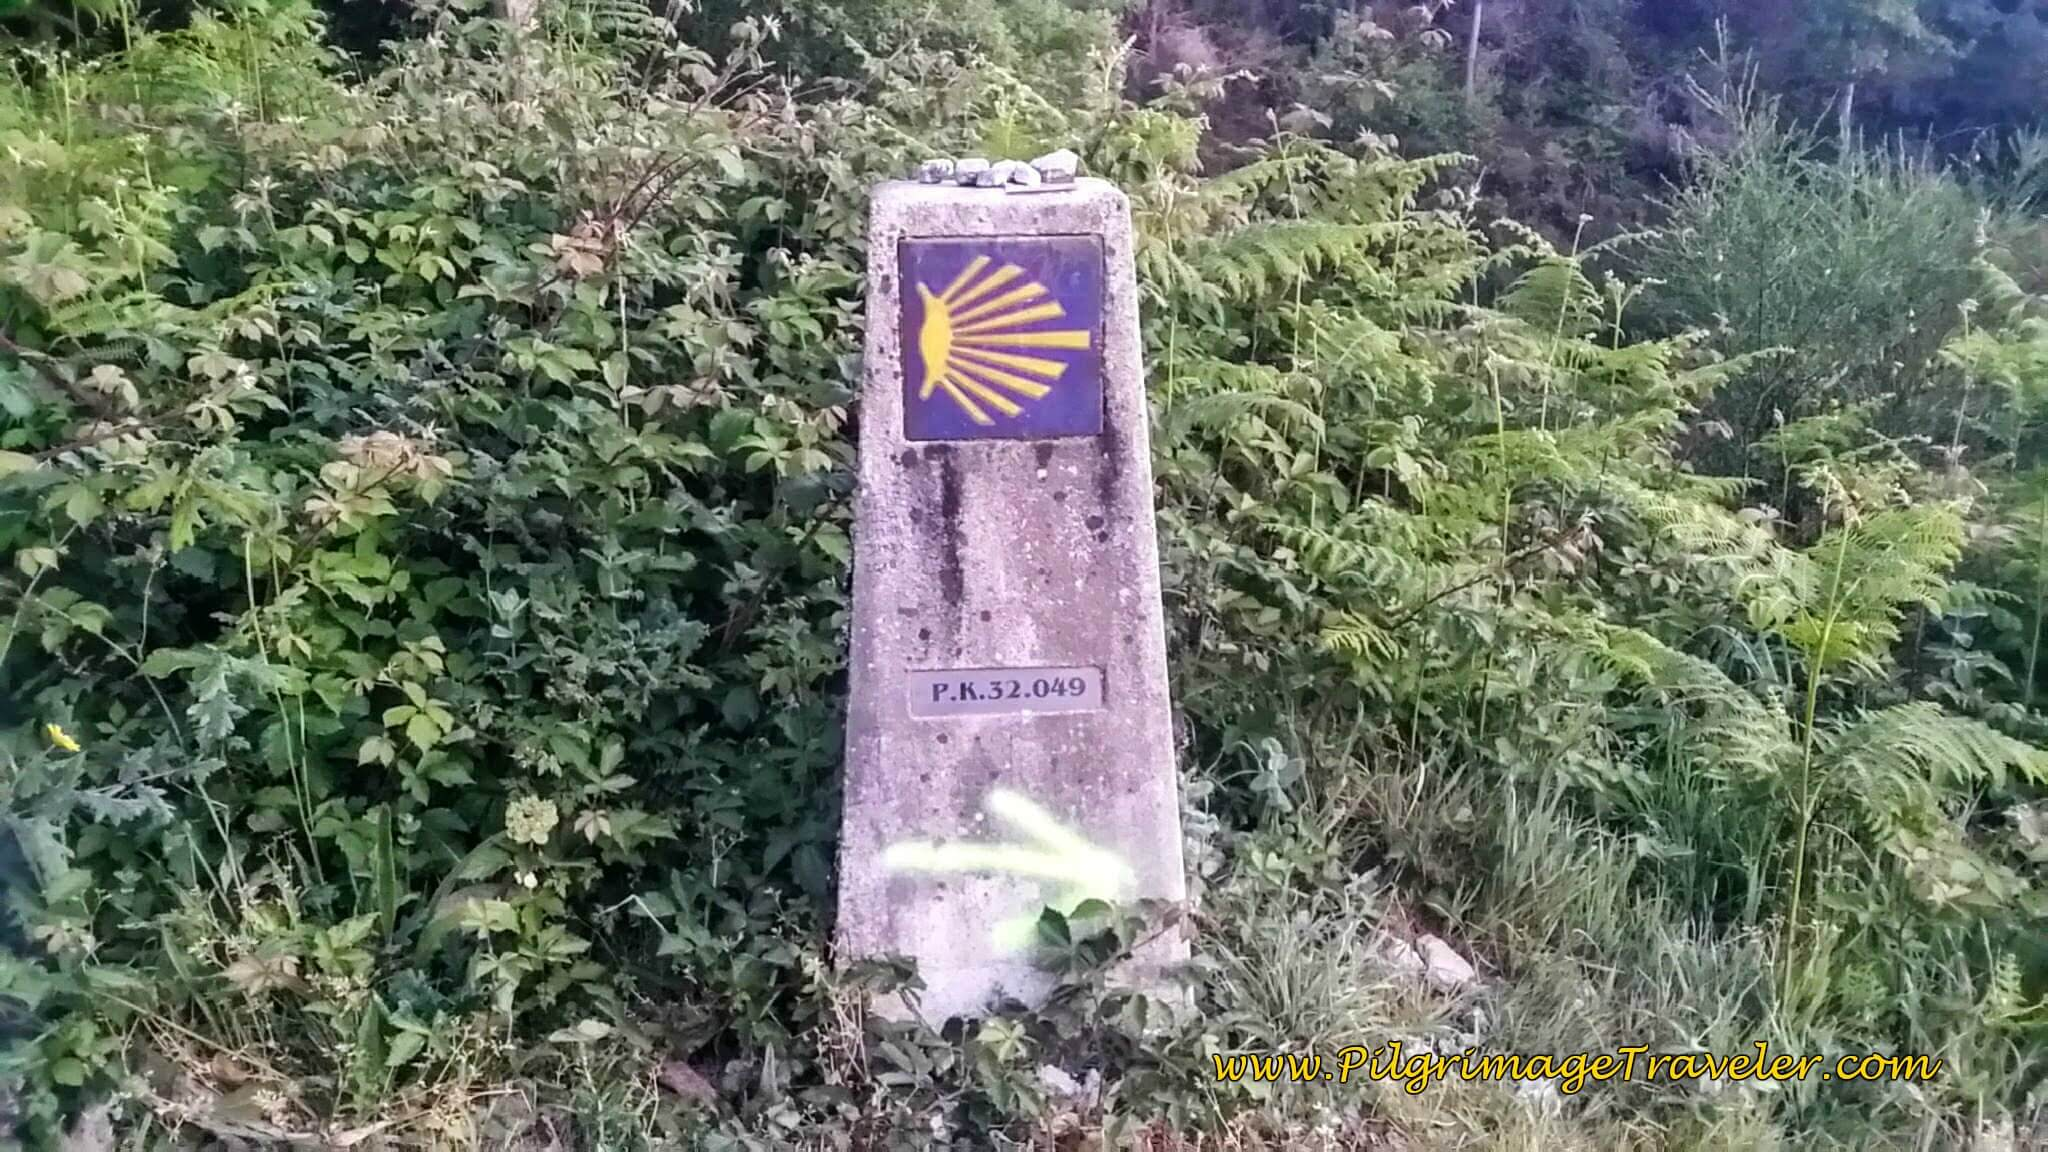 32 KM Waymark on Day Twenty-Four, Camino Portugués